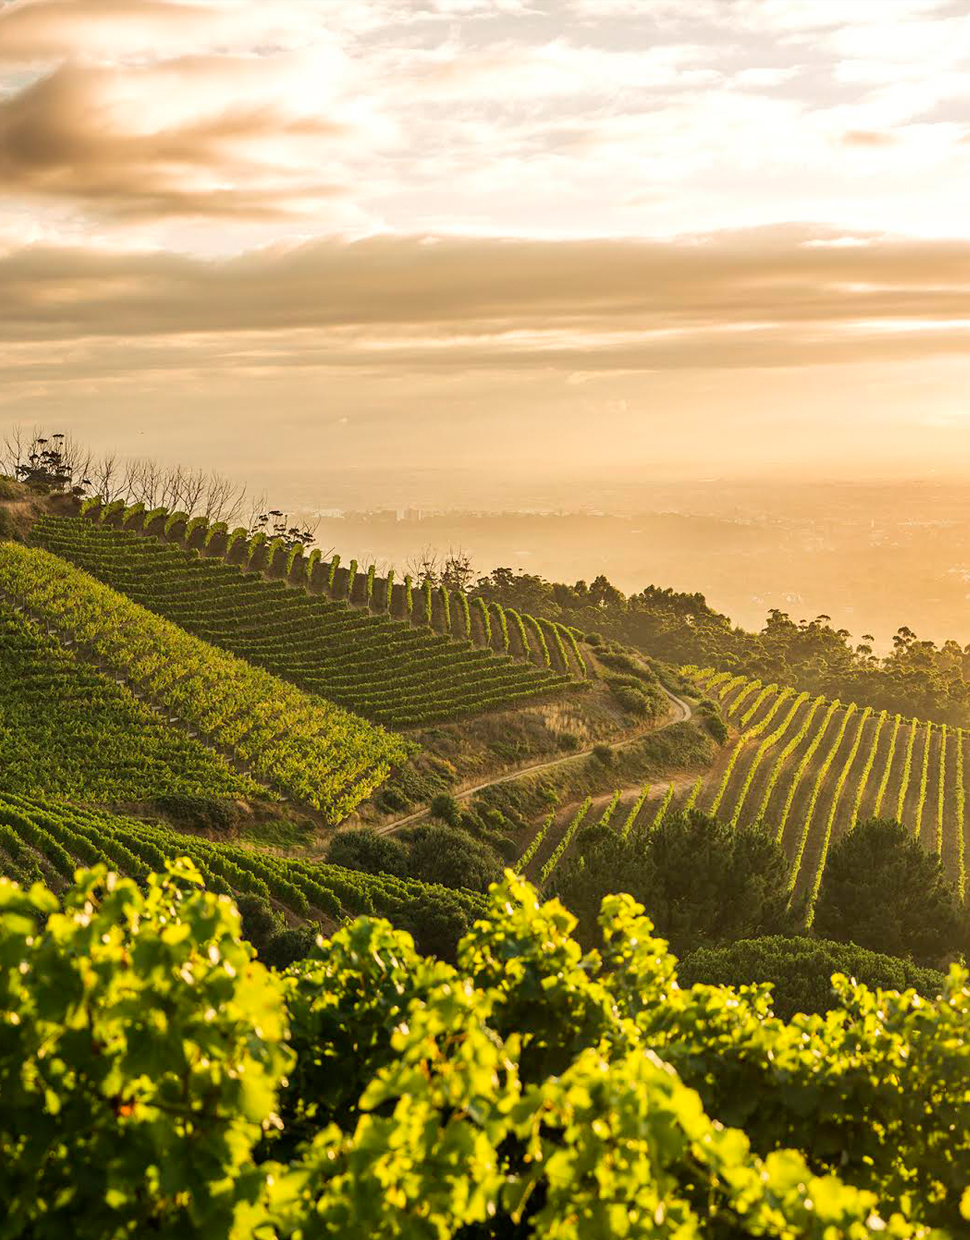 BEST-OF-HISTORIC-CONSTANTIA-WINE-VALLEY-.jpg